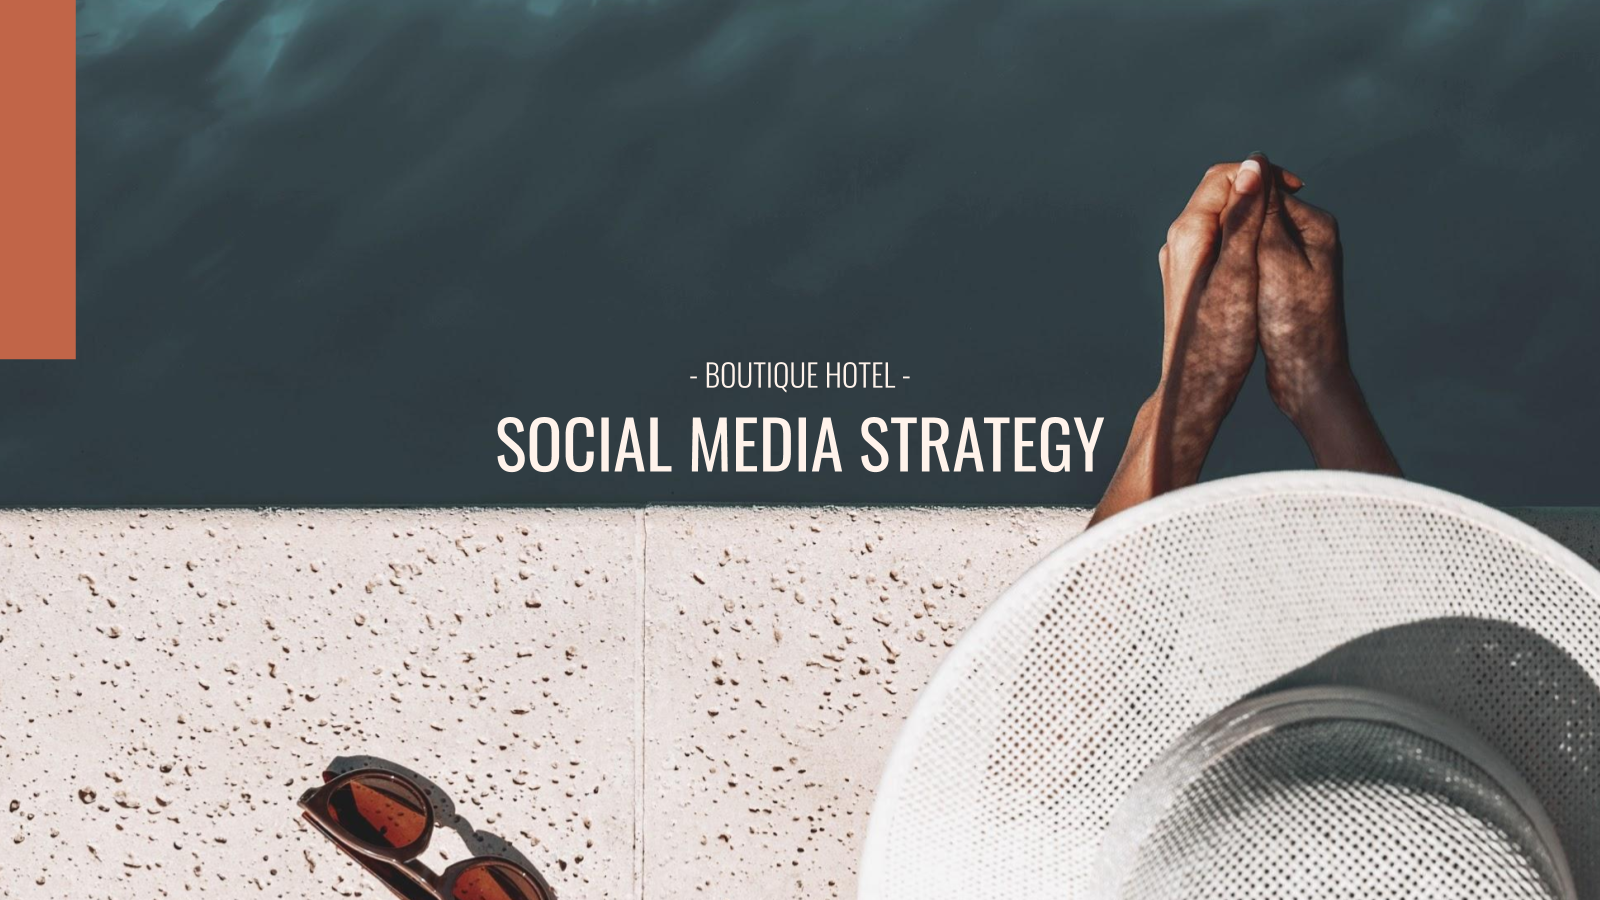 Boutique Hotel Social Media presentation template